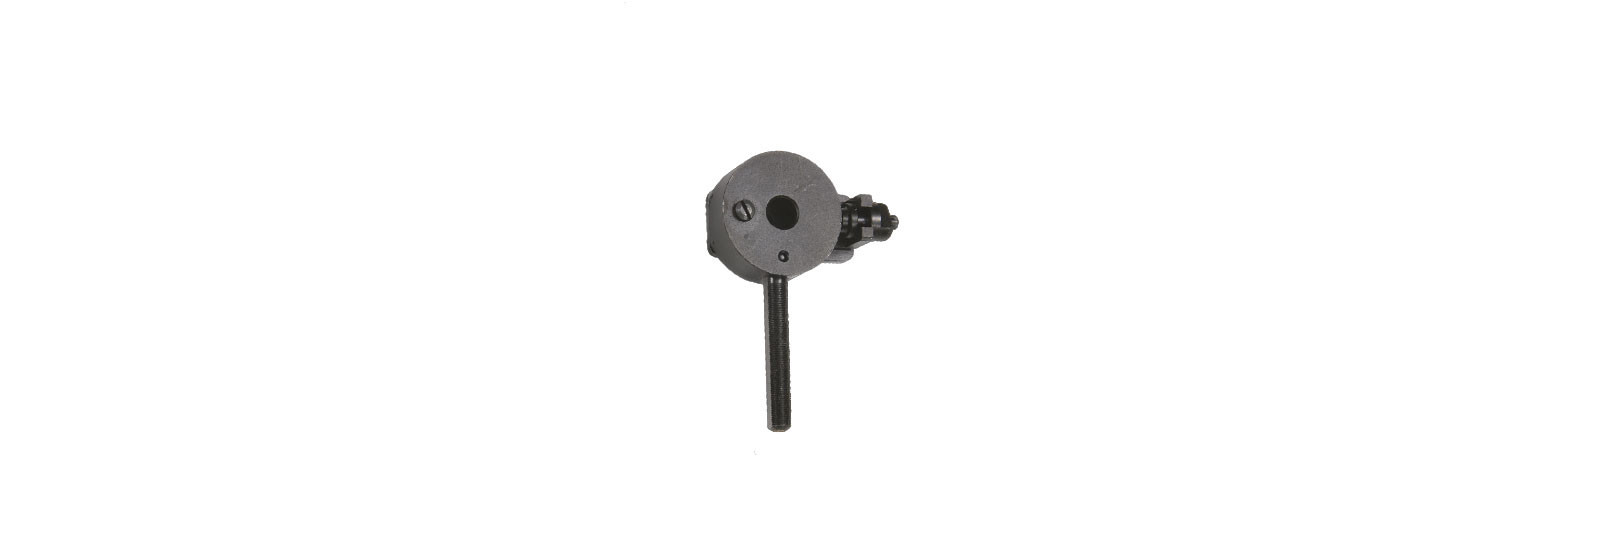 Creedmoor sight adjustable for windage